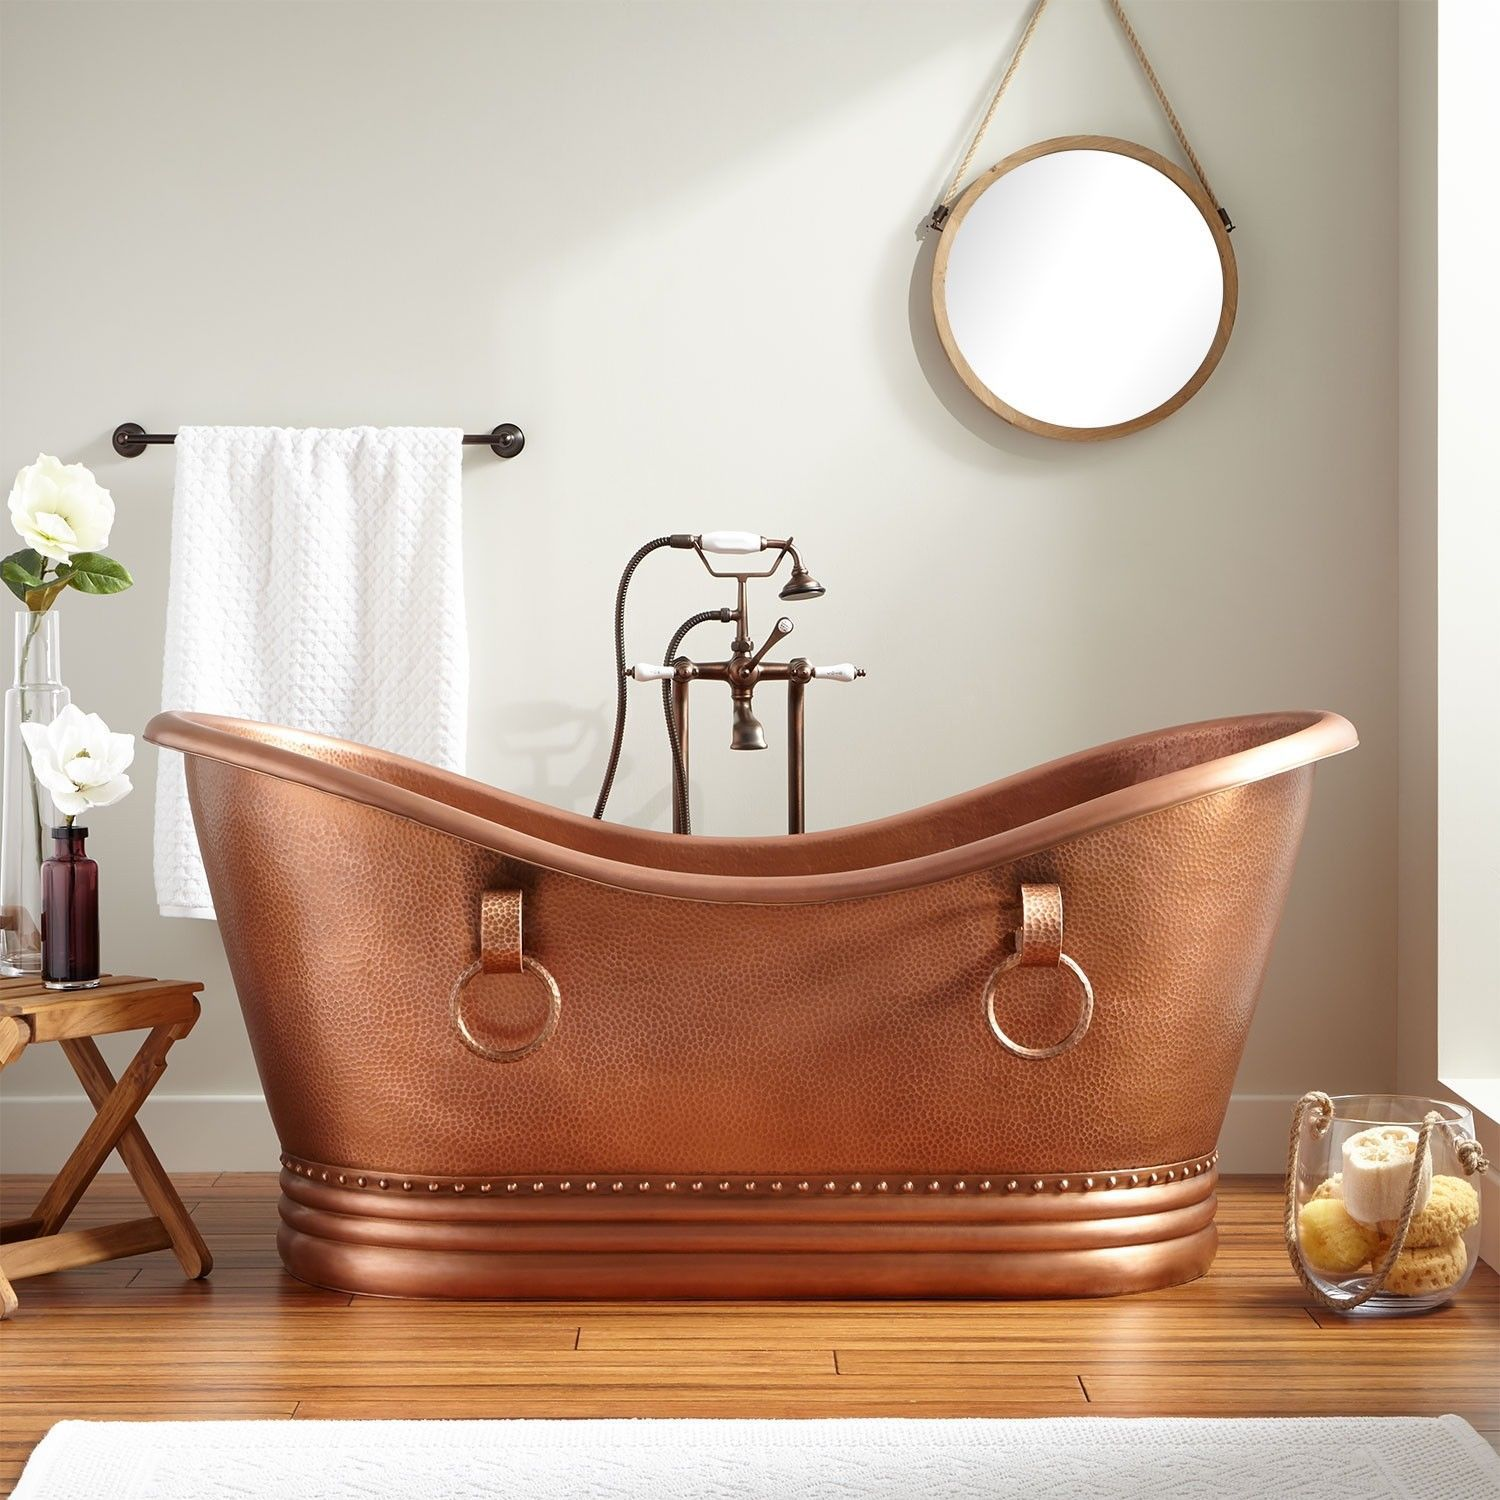 Bathroom Archives - Indonesia furniture manufacturers exporters ...